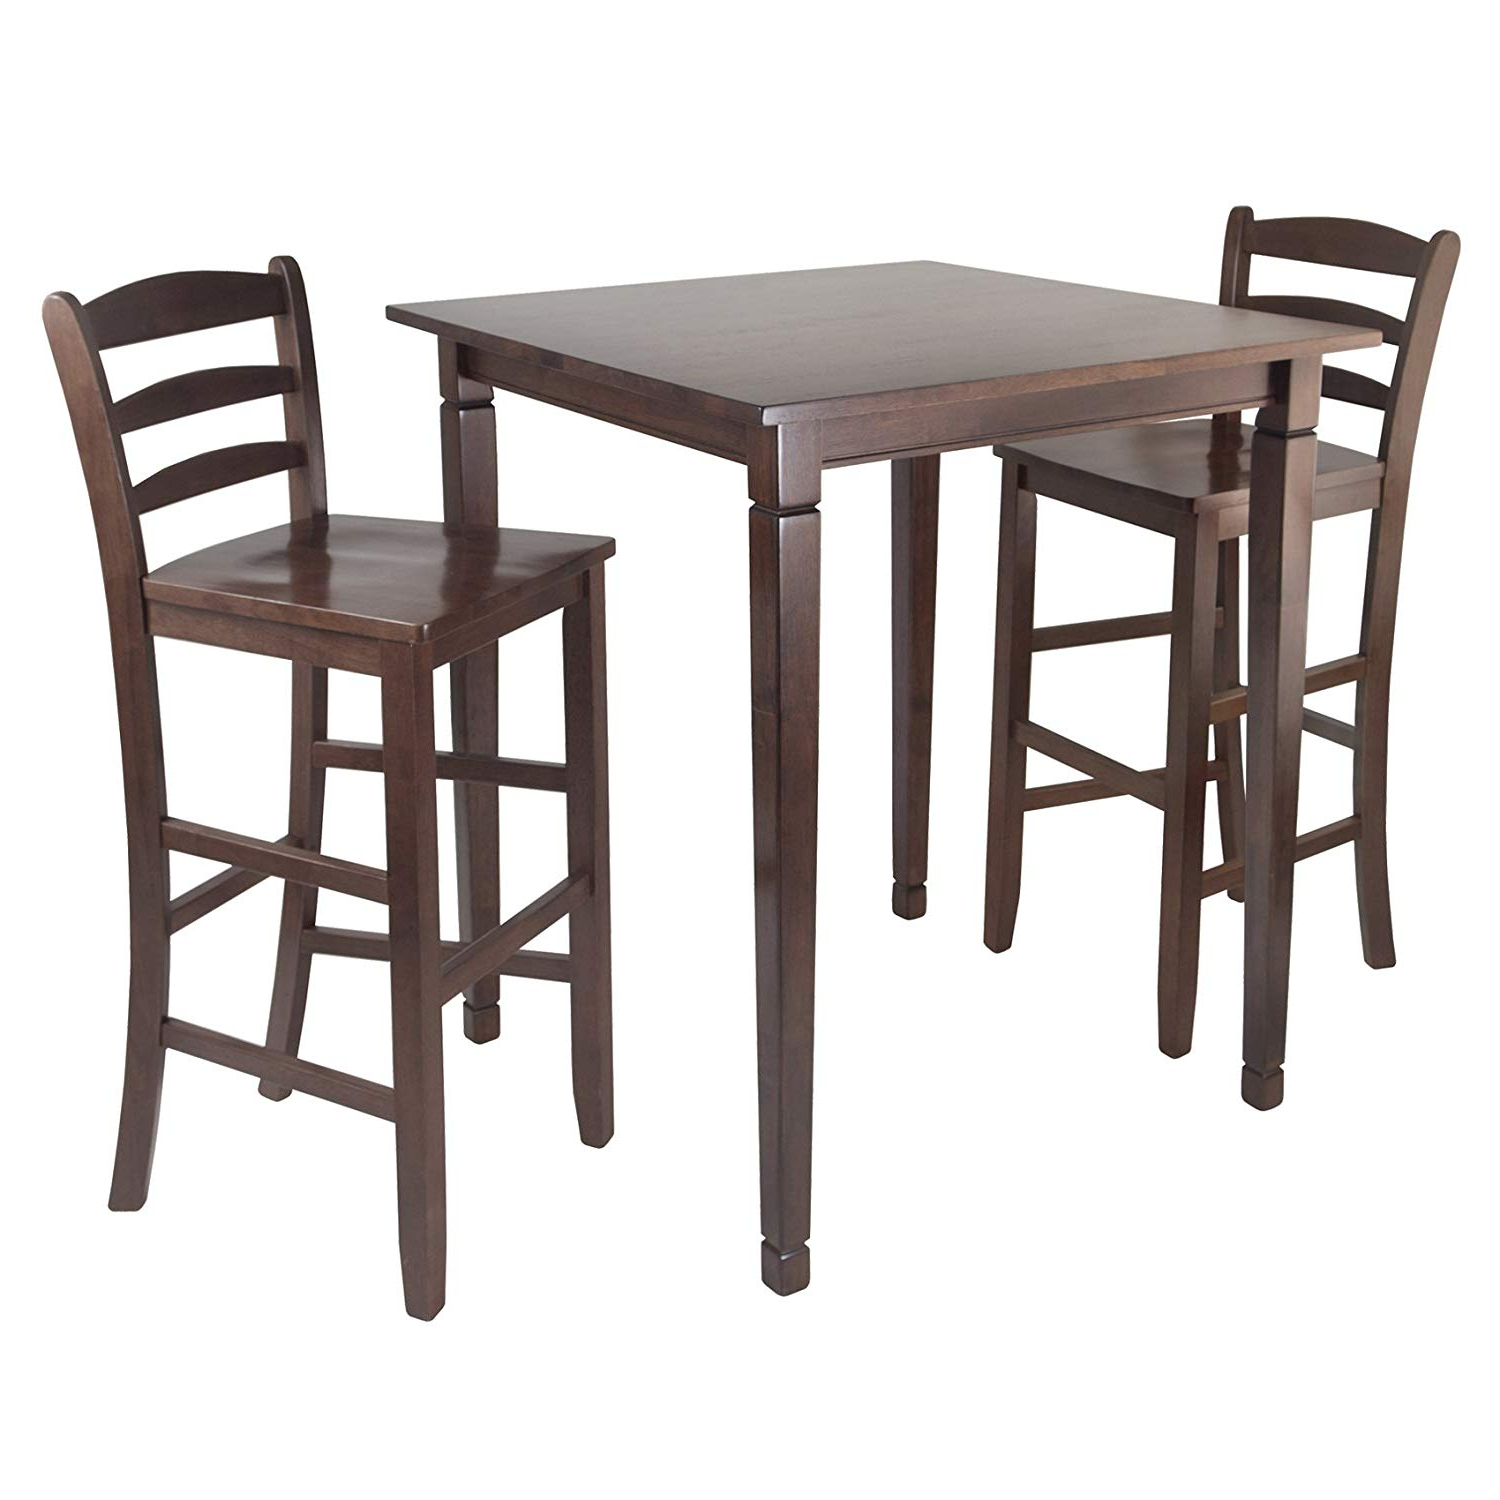 Winsome Kingsgate High/pub Dining Table With Ladder Back High Chair, 3 Piece Throughout Current Winsome 3 Piece Counter Height Dining Sets (View 18 of 20)